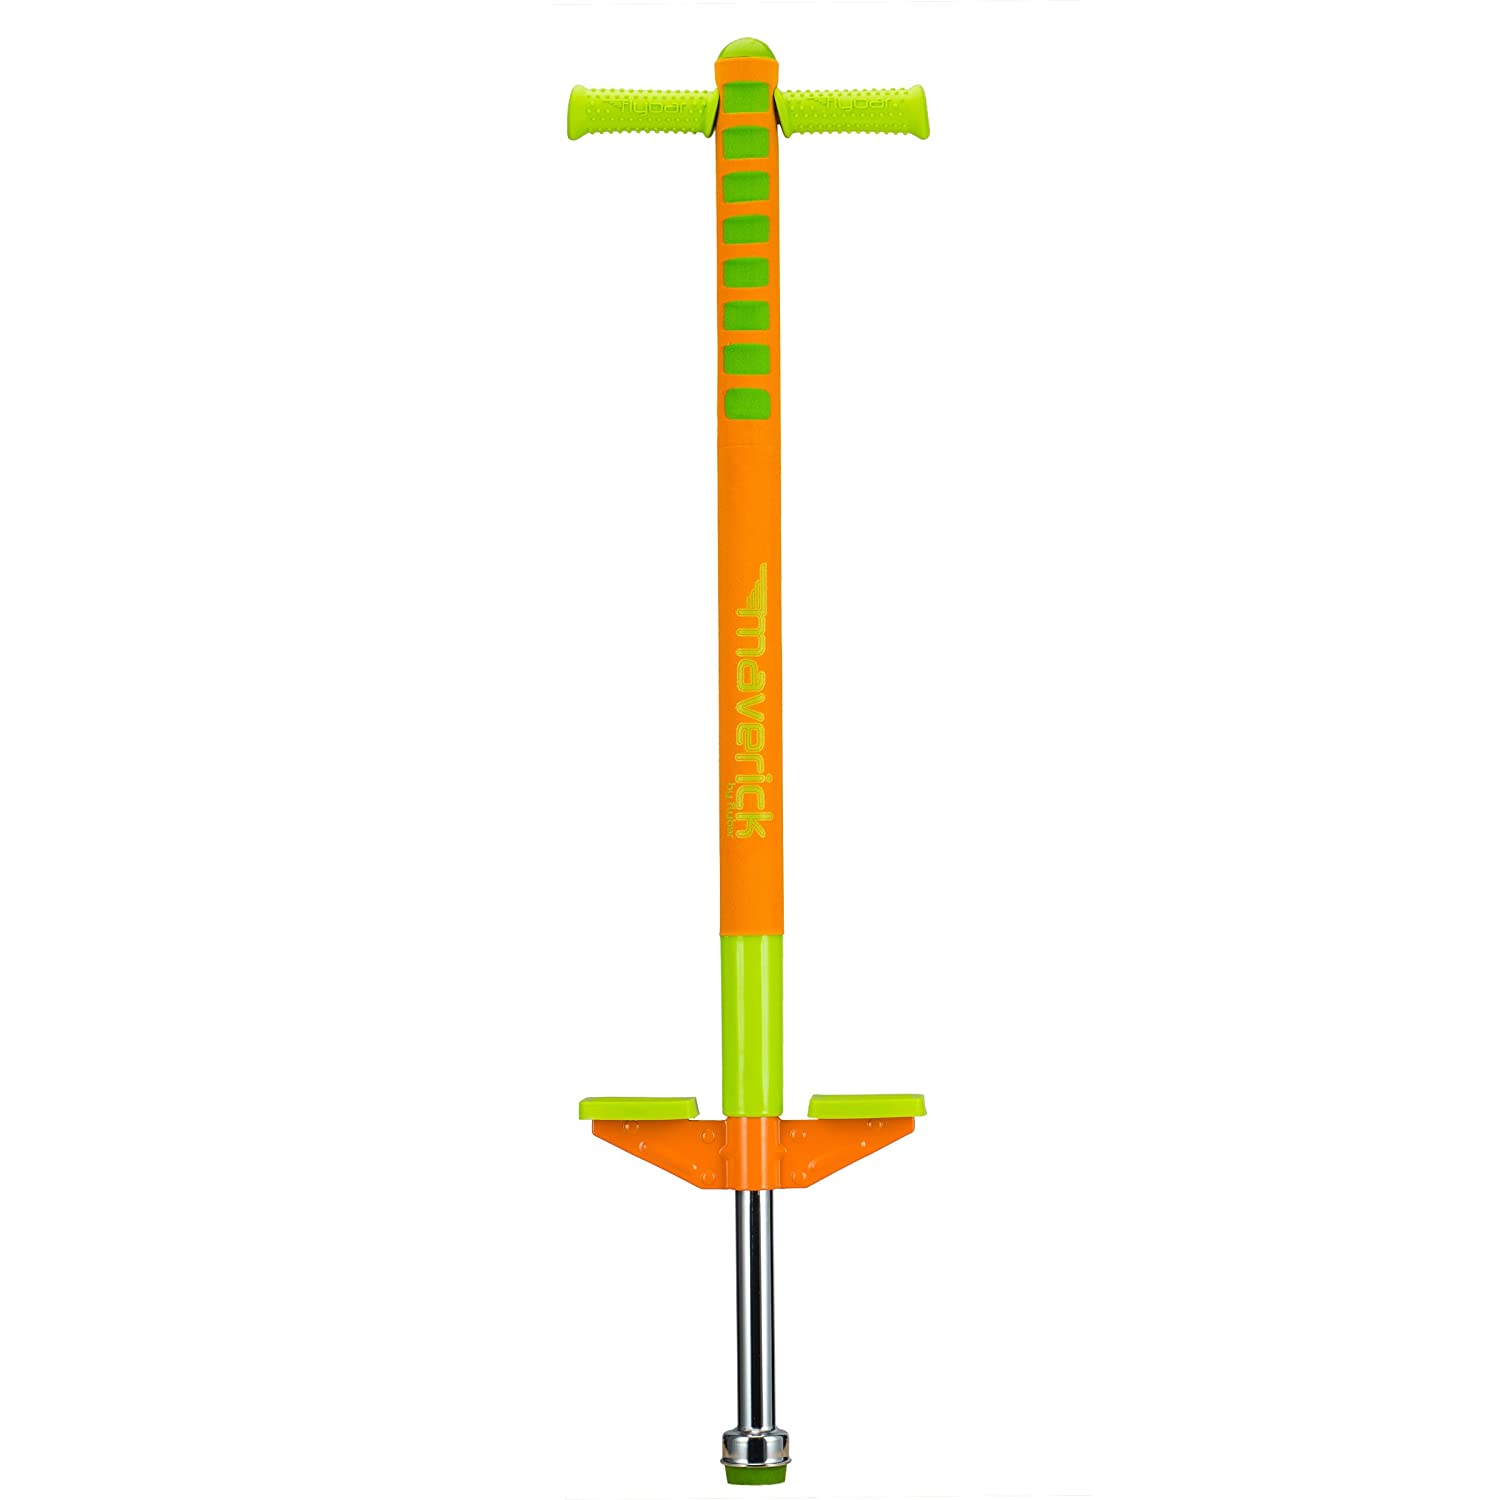 Flybar Limited Edition Foam Maverick Pogo Stick for Kids Two New Colors New Rubber Hand Grips